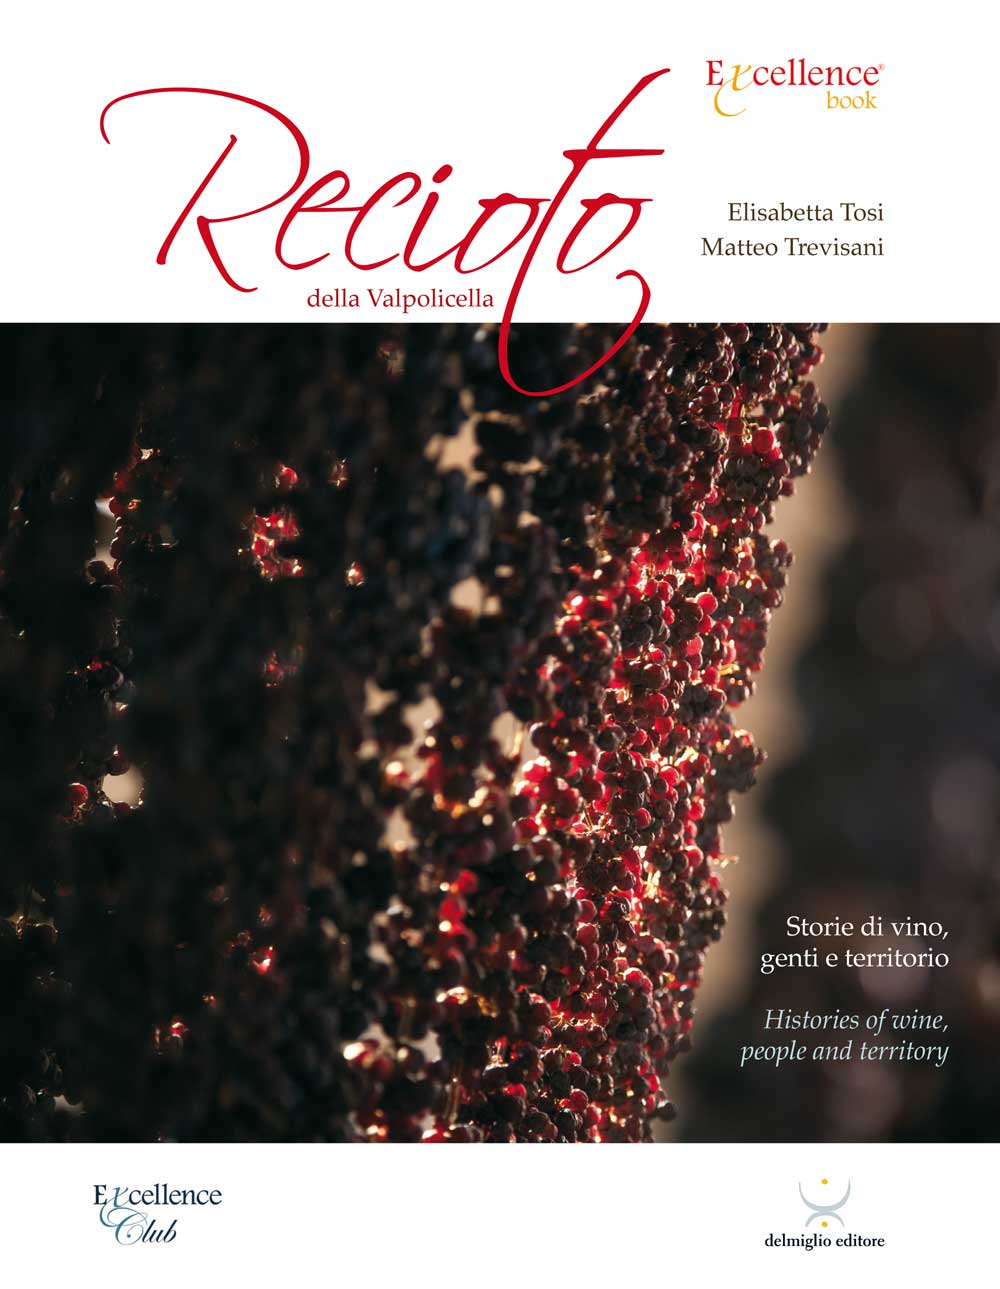 The front cover of the new book dedicated to the Recioto della Valpolicella